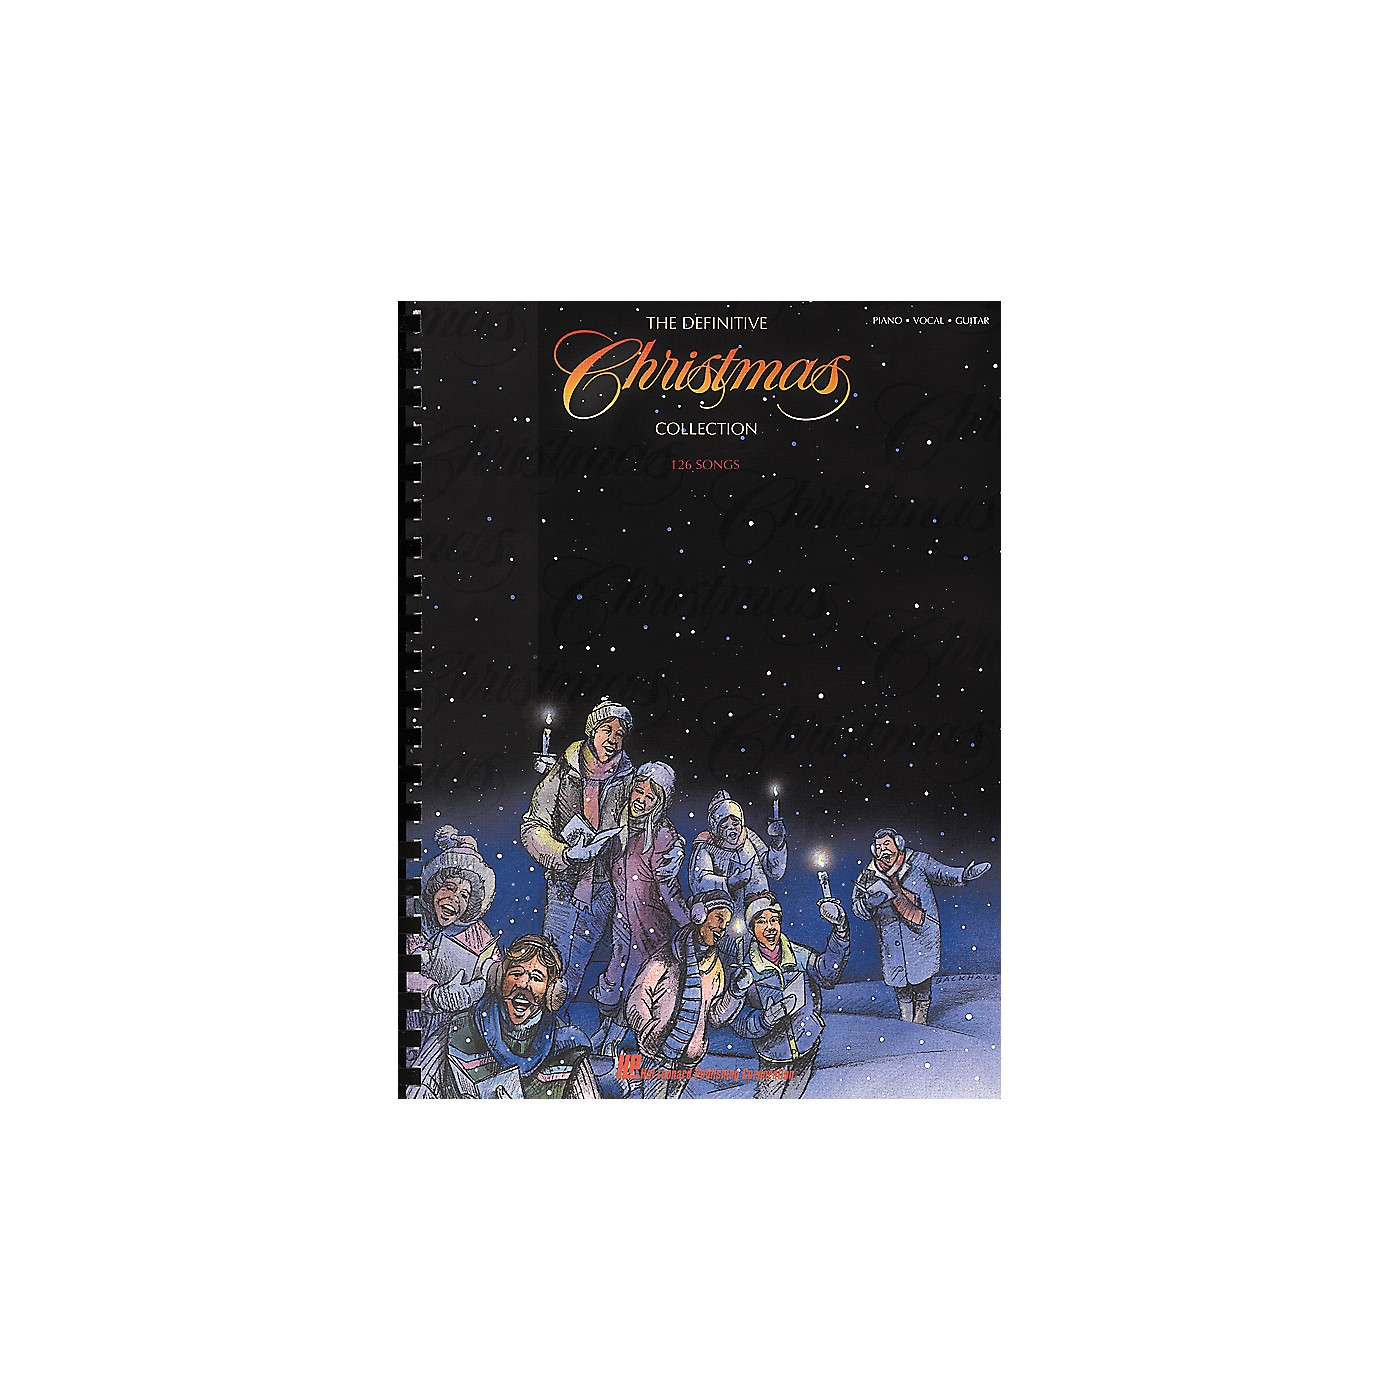 Hal Leonard Definitive Christmas Collection Piano, Vocal, Guitar Songbook thumbnail